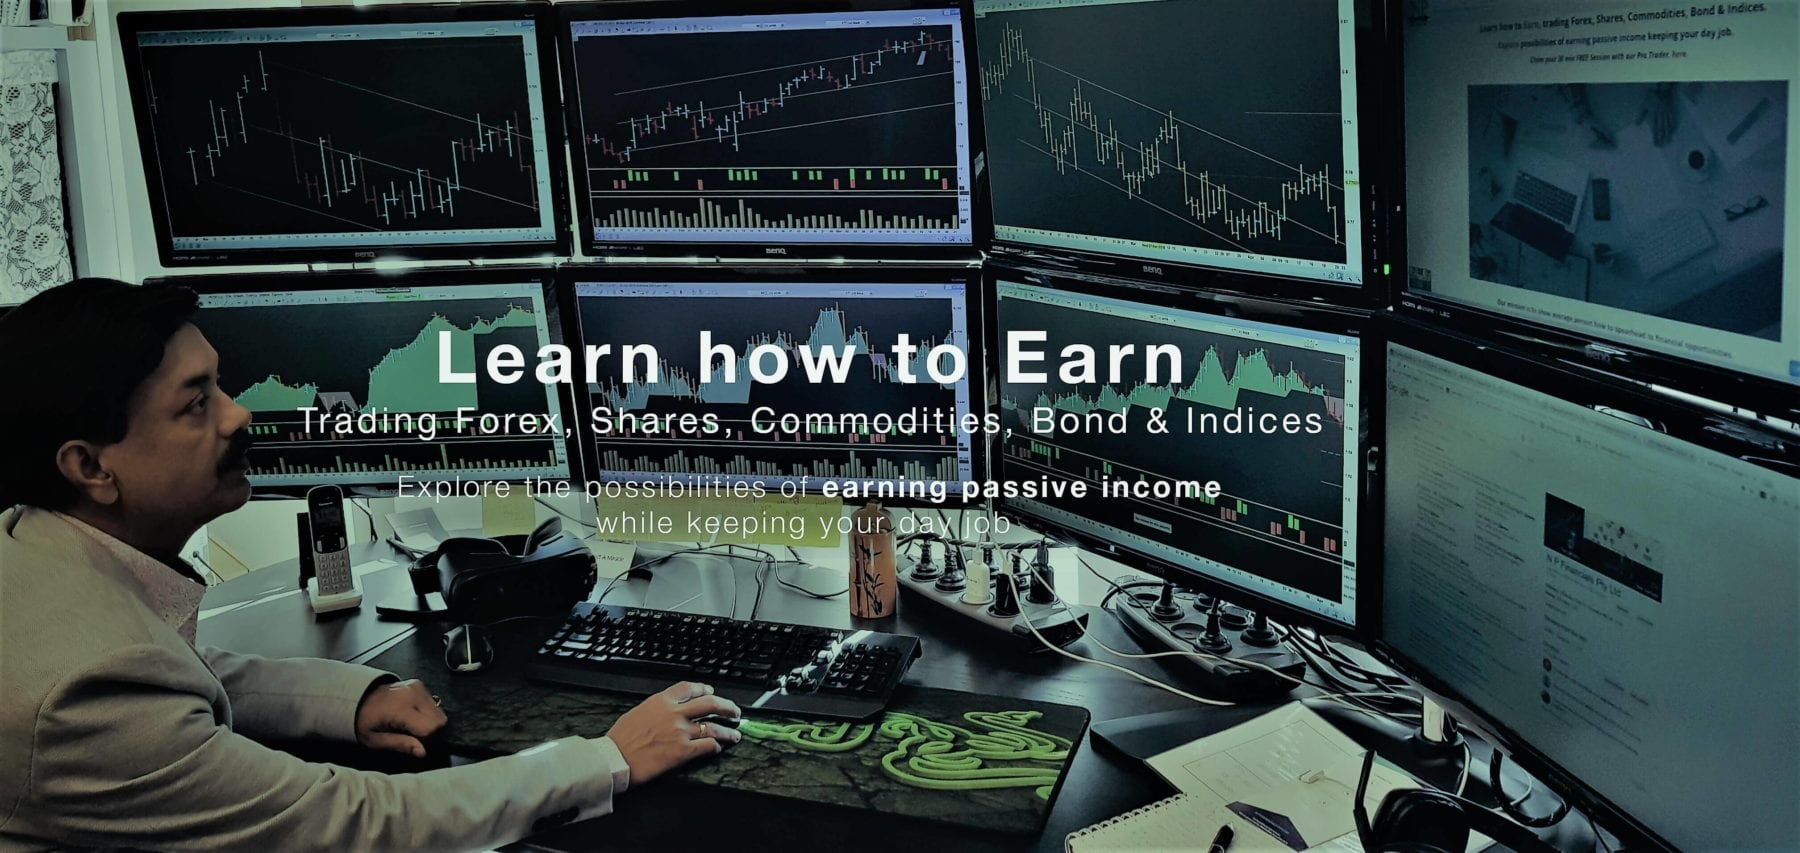 Learn-how-to-Earn-by-Trading-Forex-with-NP-Financials